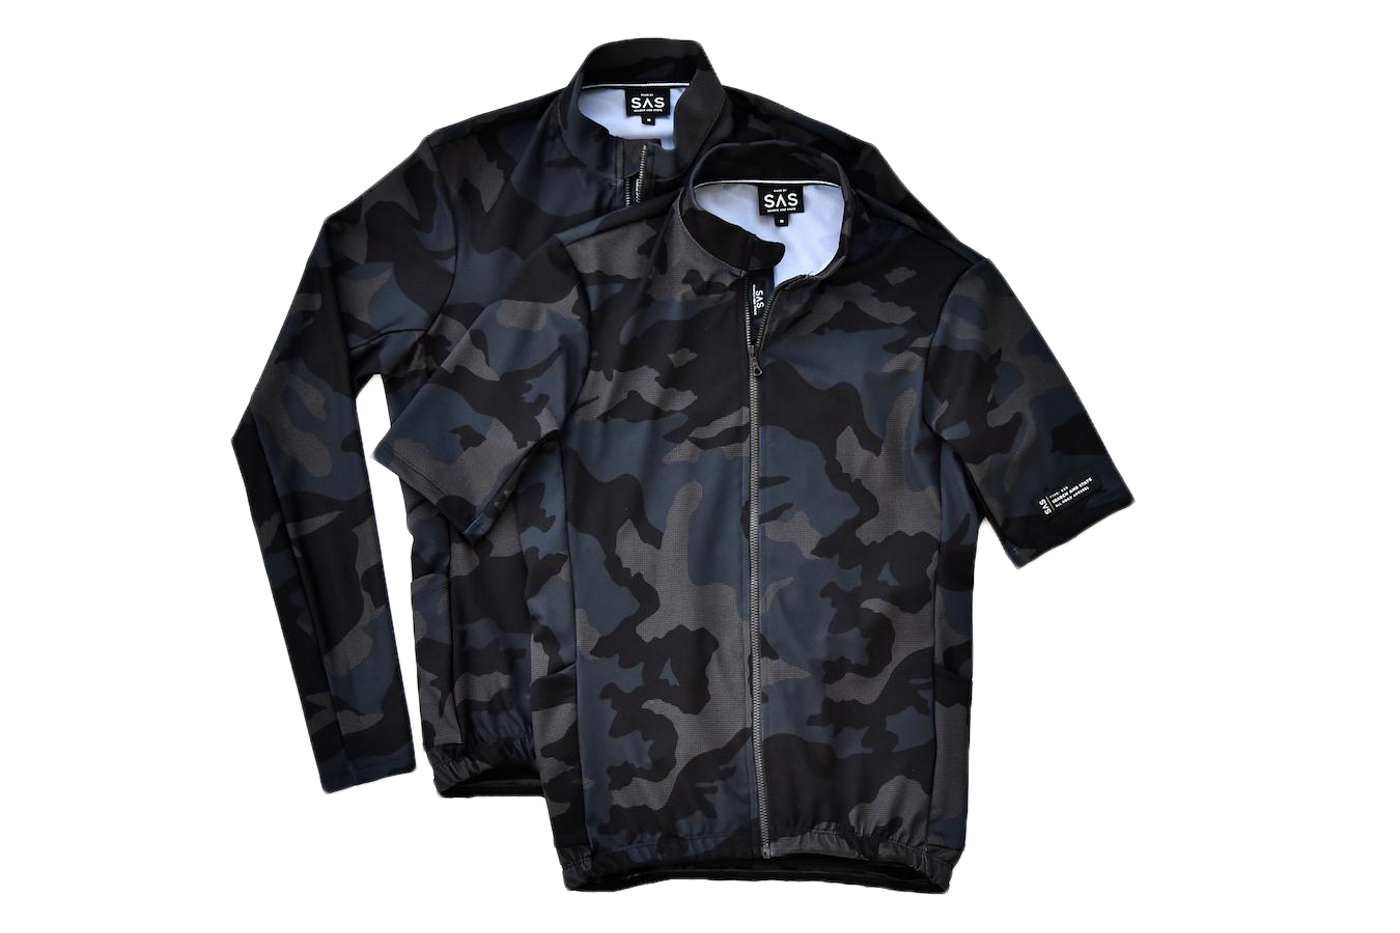 Search and State's S2-R Camo Short and Long Sleeve Jerseys